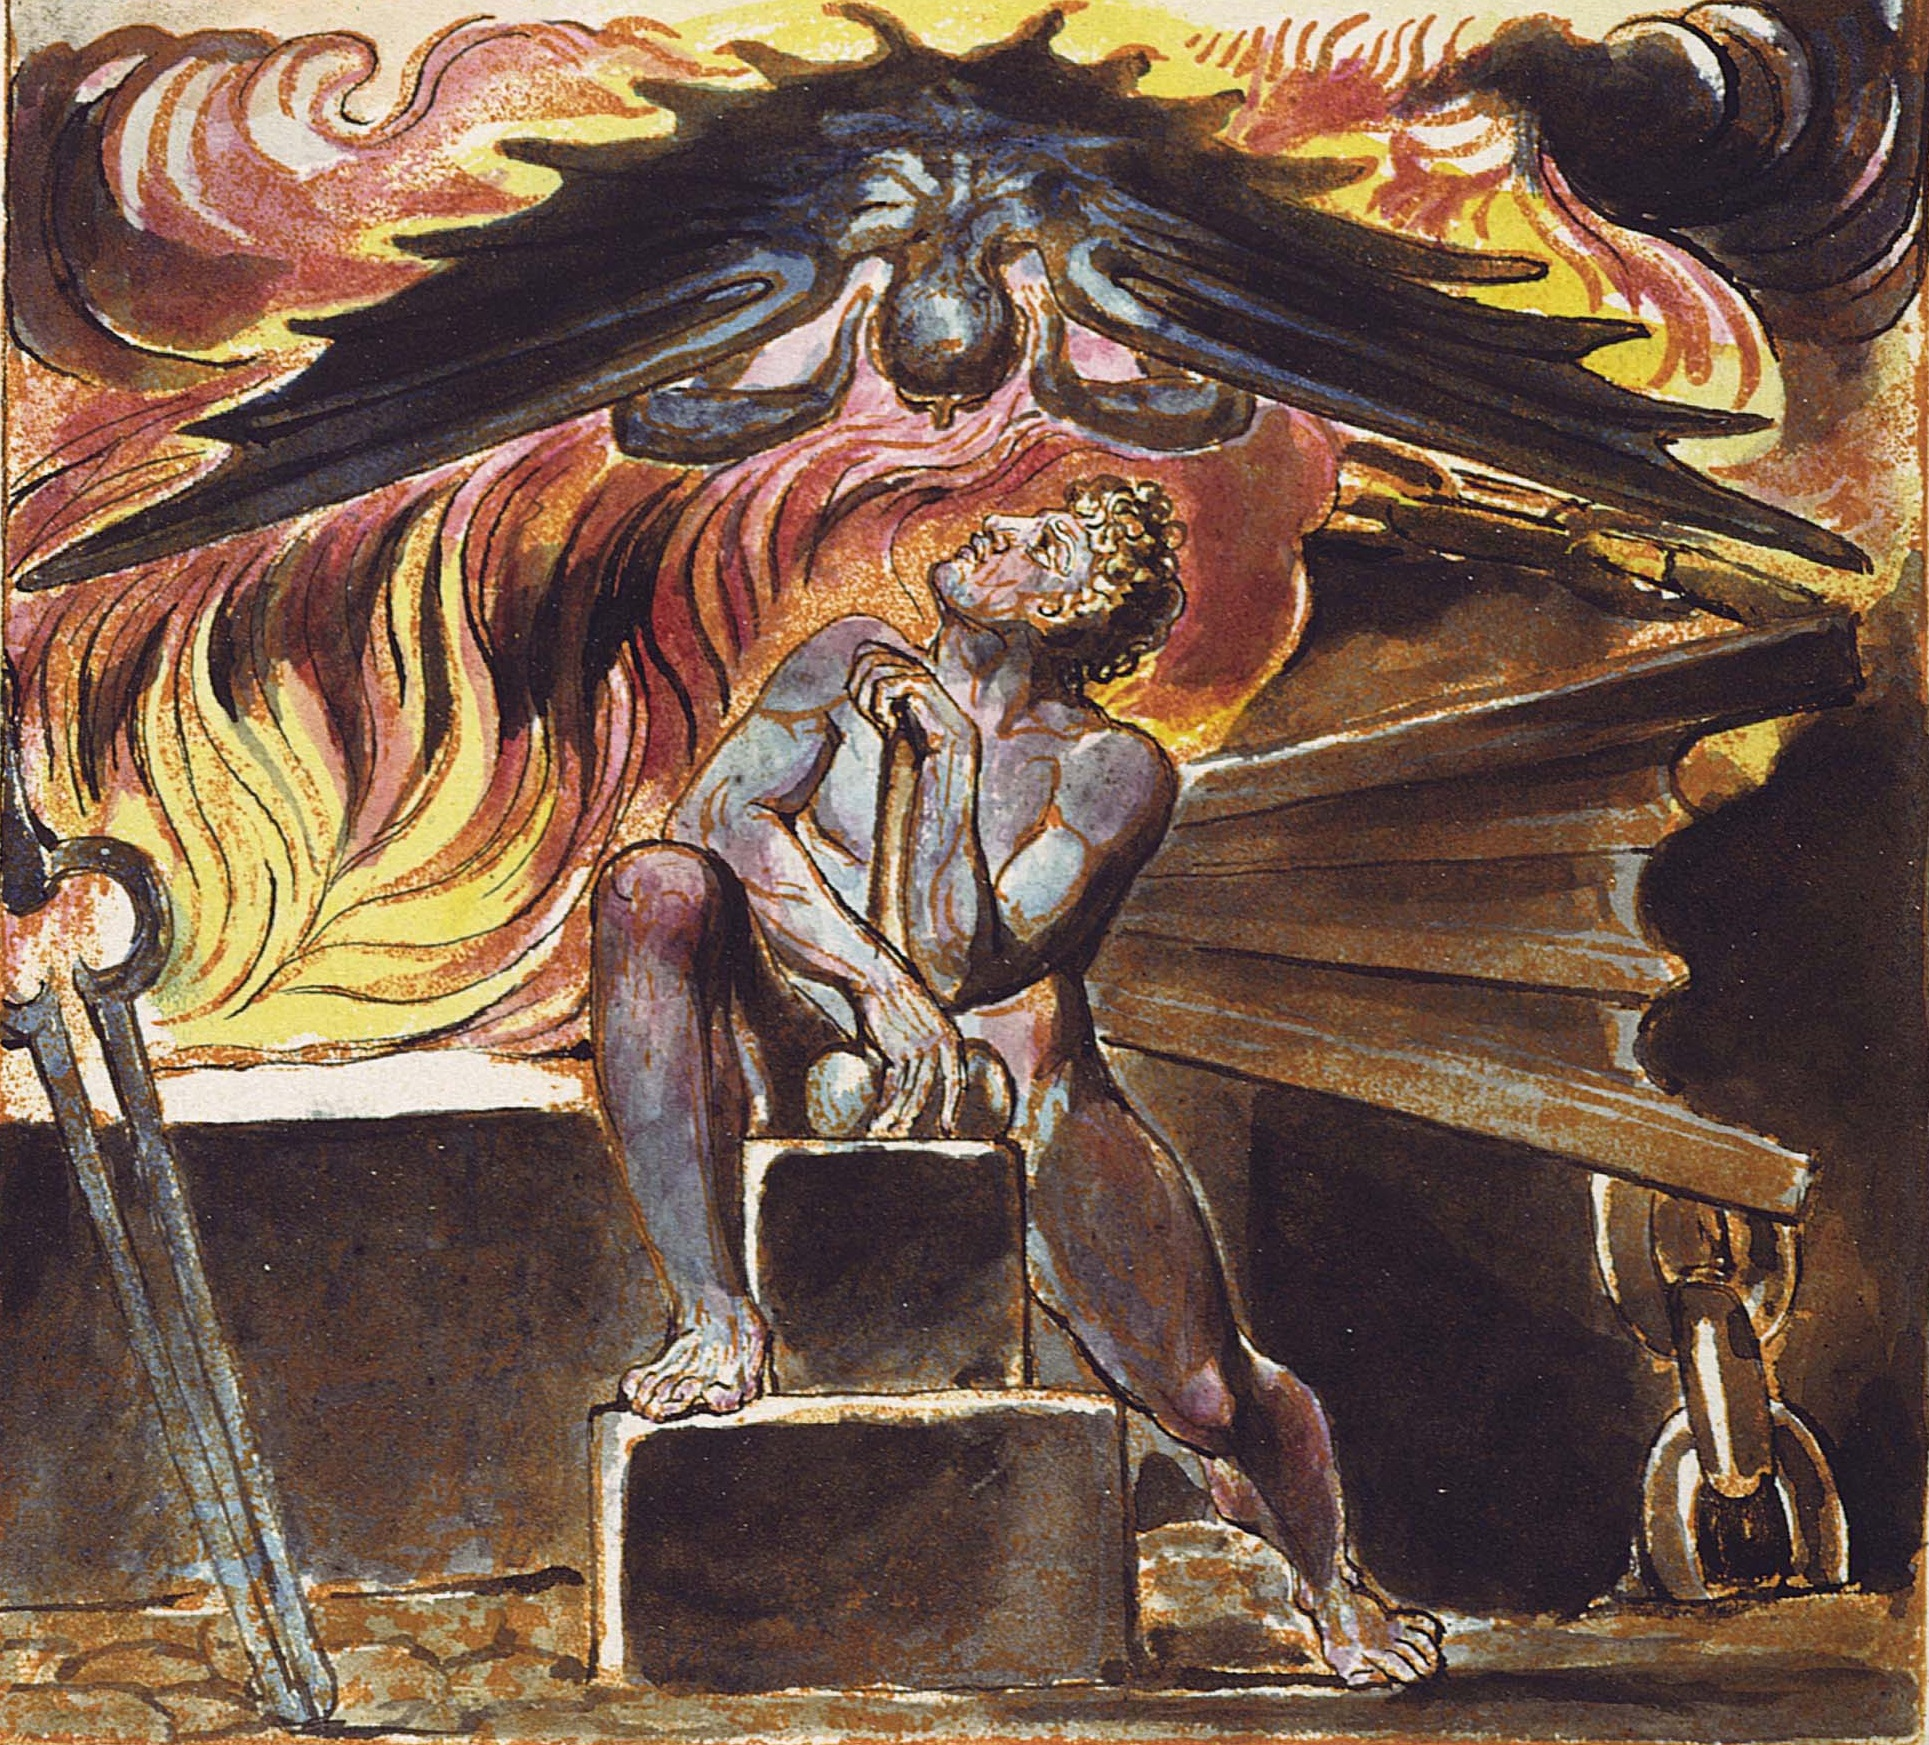 literary tools of expression of william blake Li, ruth, revelatory words and images: william blake and the artist's book ( 2013)  i would like to express my gratitude to the many people who have  helped me with  both literary and visual elements that coincide with, coalesce  into, and.